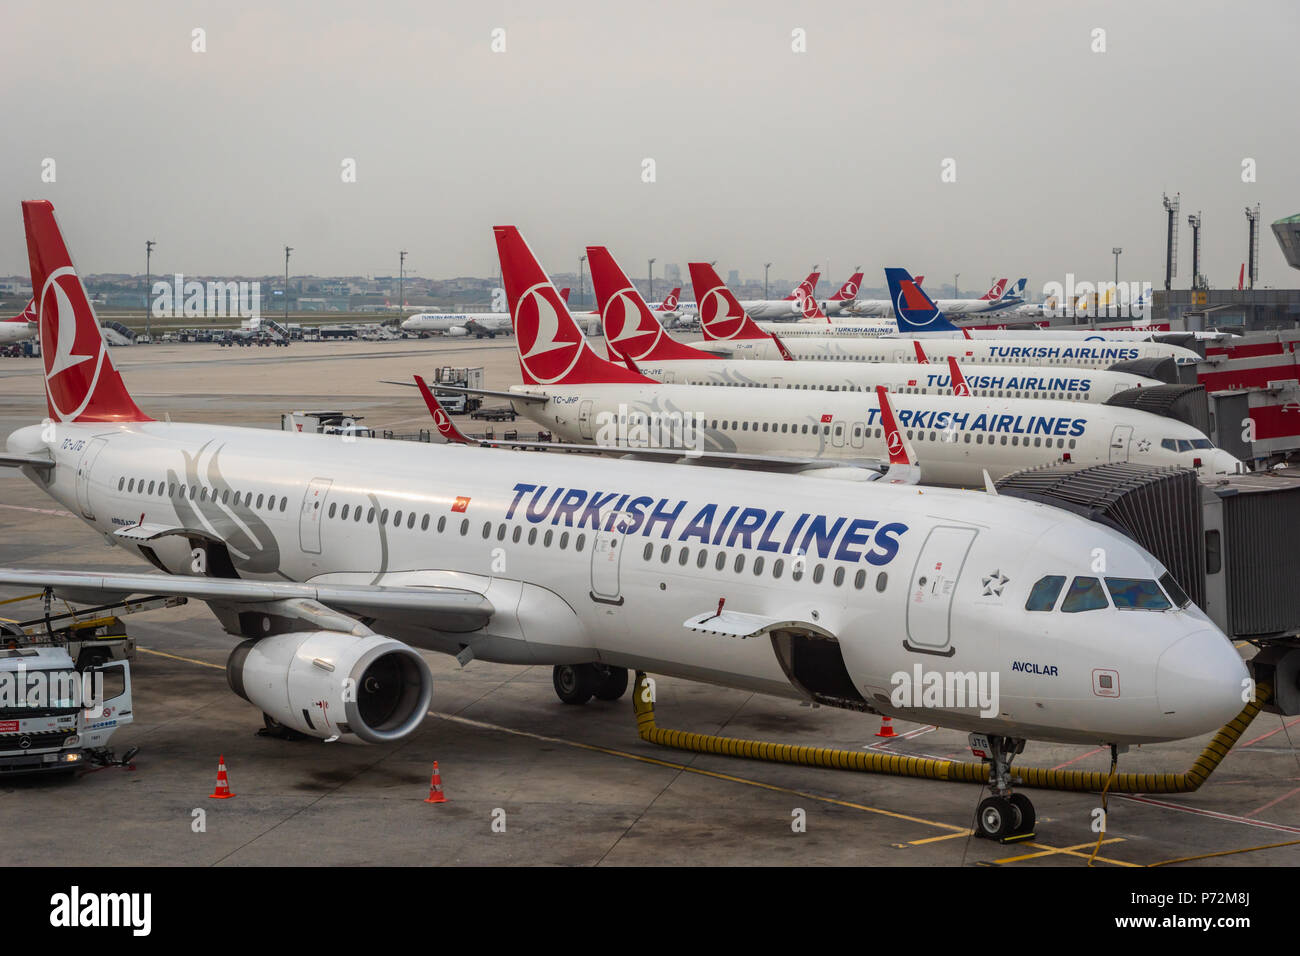 Istanbul, Turkey - June 2018: Turkish Airlines Aircraft on the runway of Istanbul Atatürk Airport. Turkish airlines is the national flag carrier airli - Stock Image